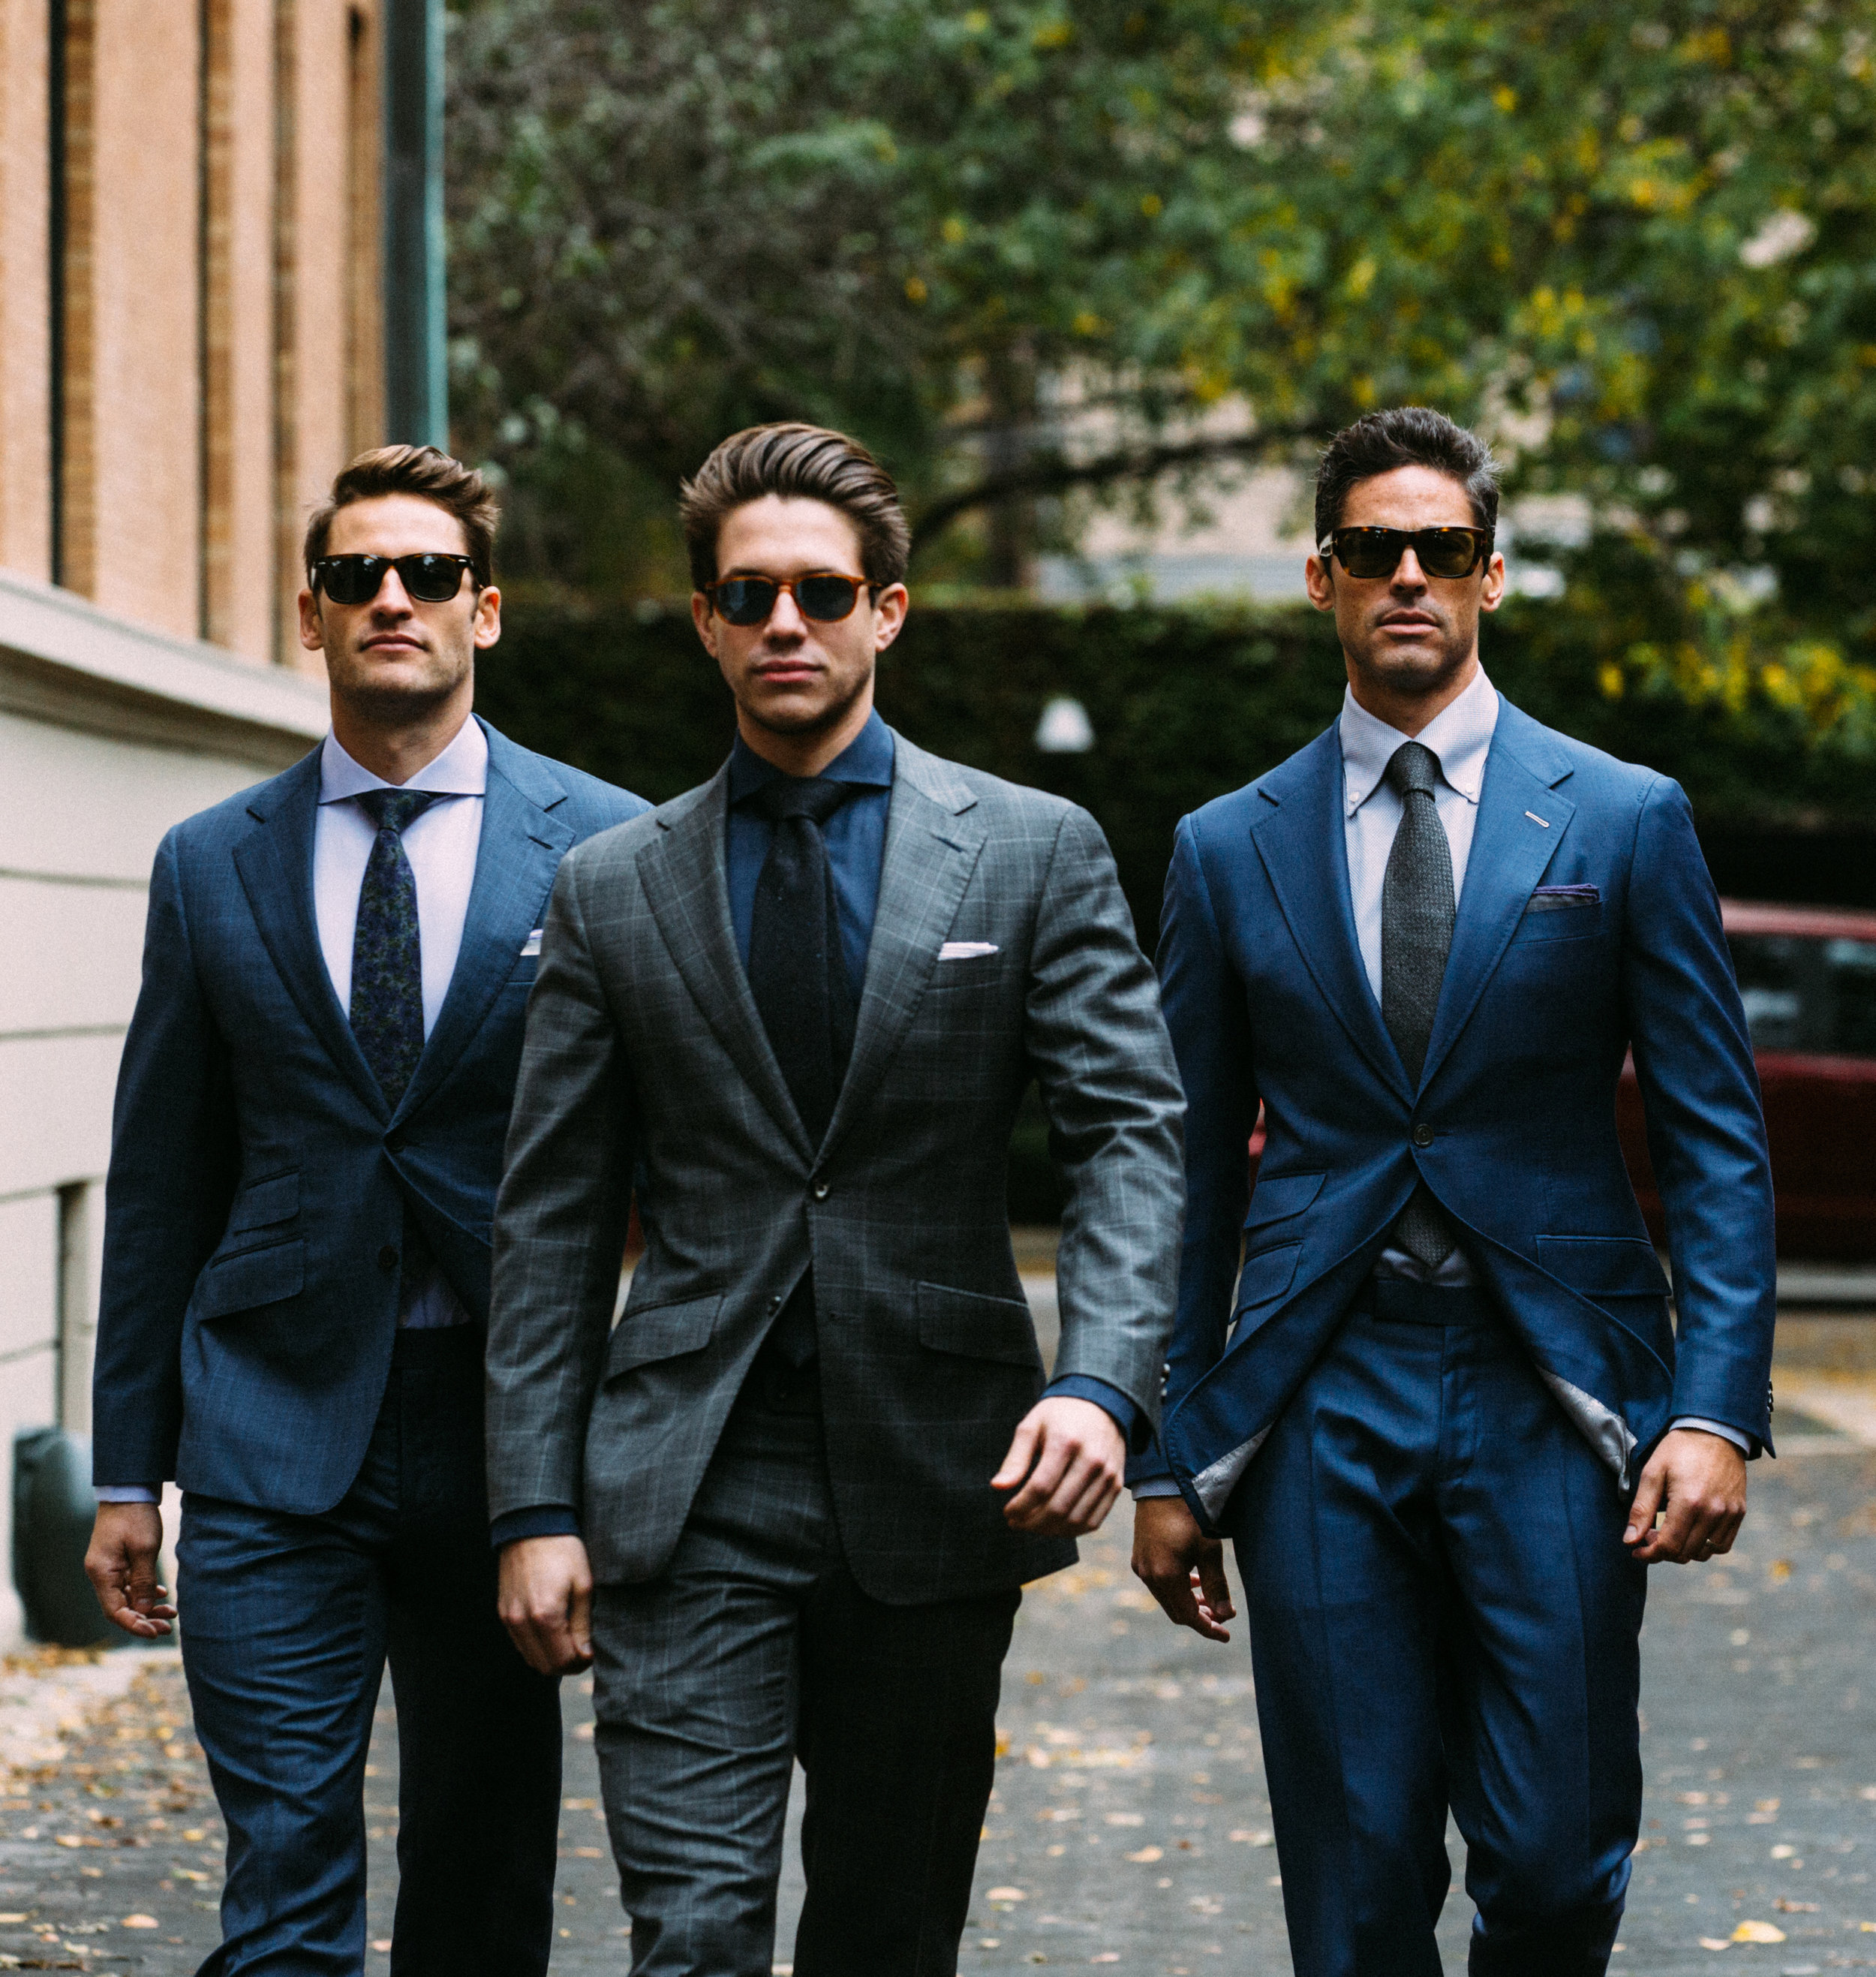 bespoke hand made suits chicago